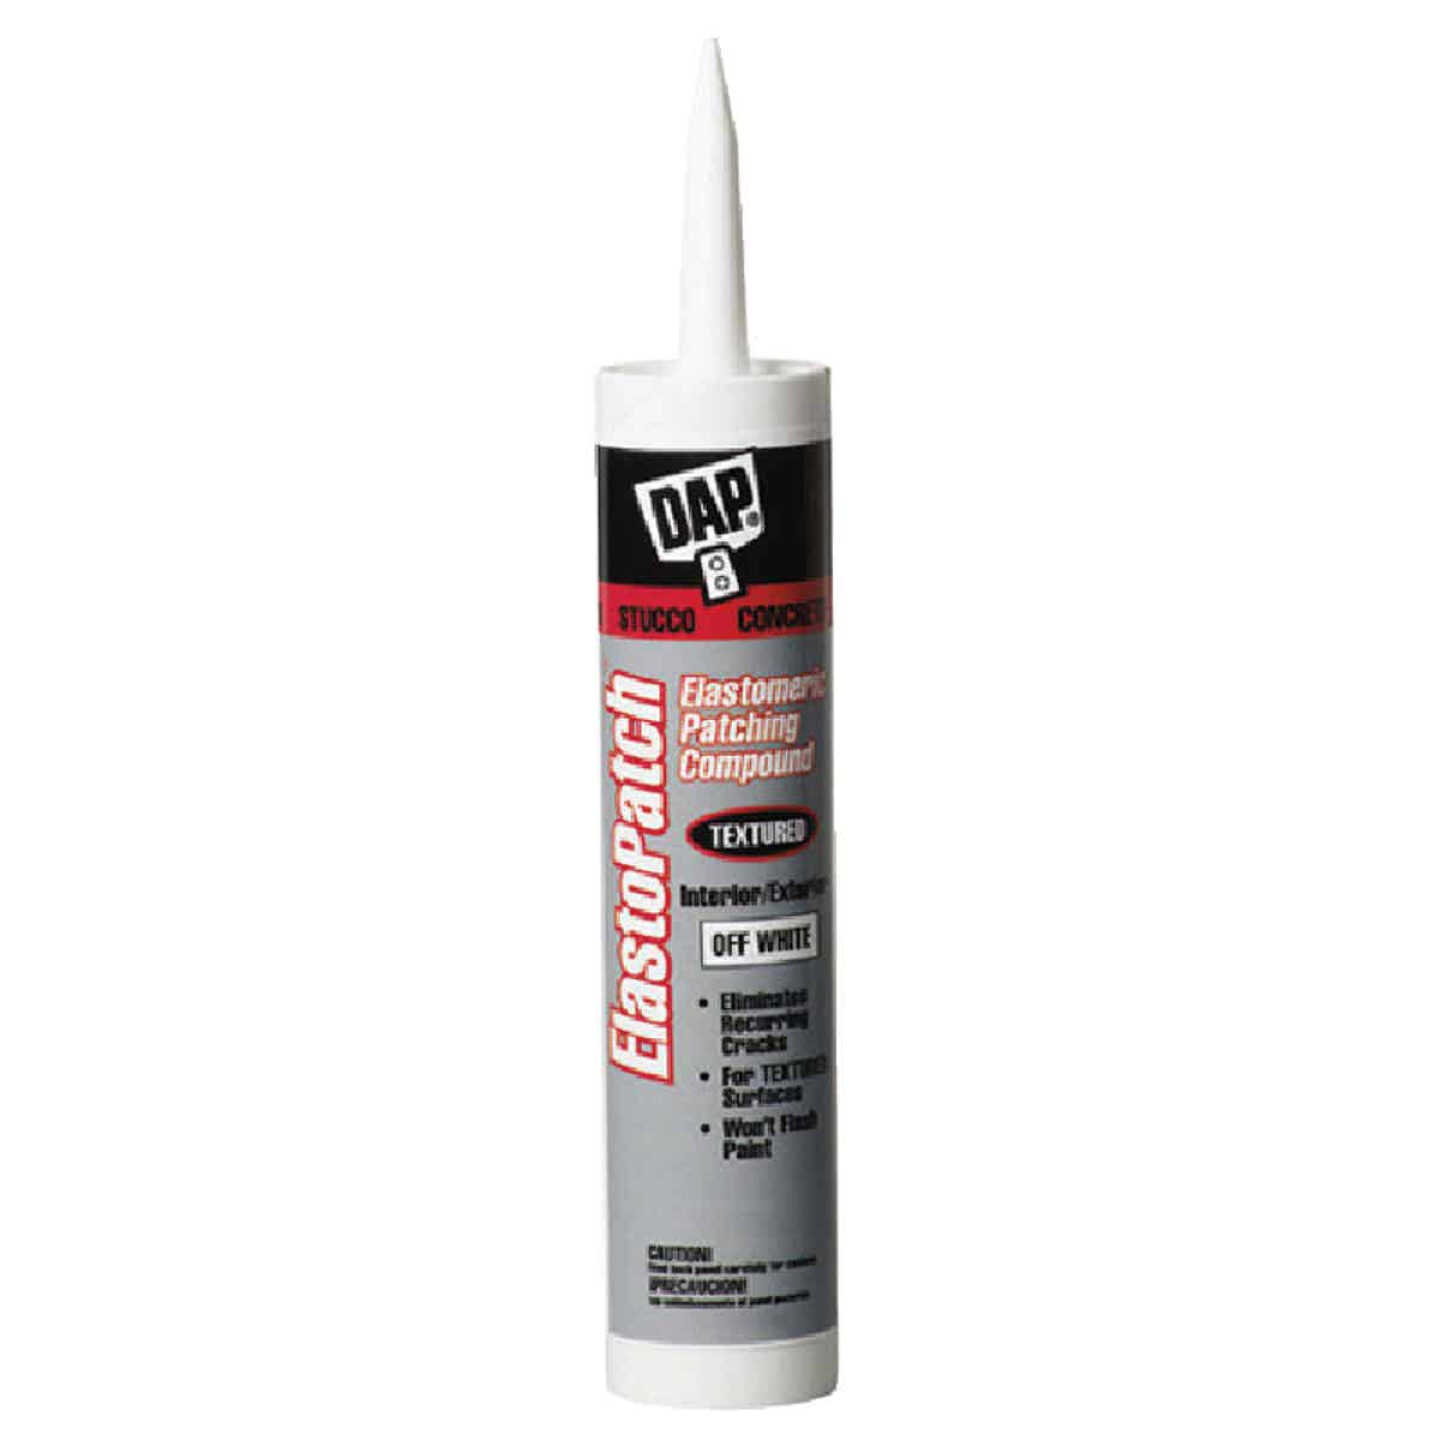 DAP ElastoPatch 10.1 Oz. Off-White Patching Compound Image 1